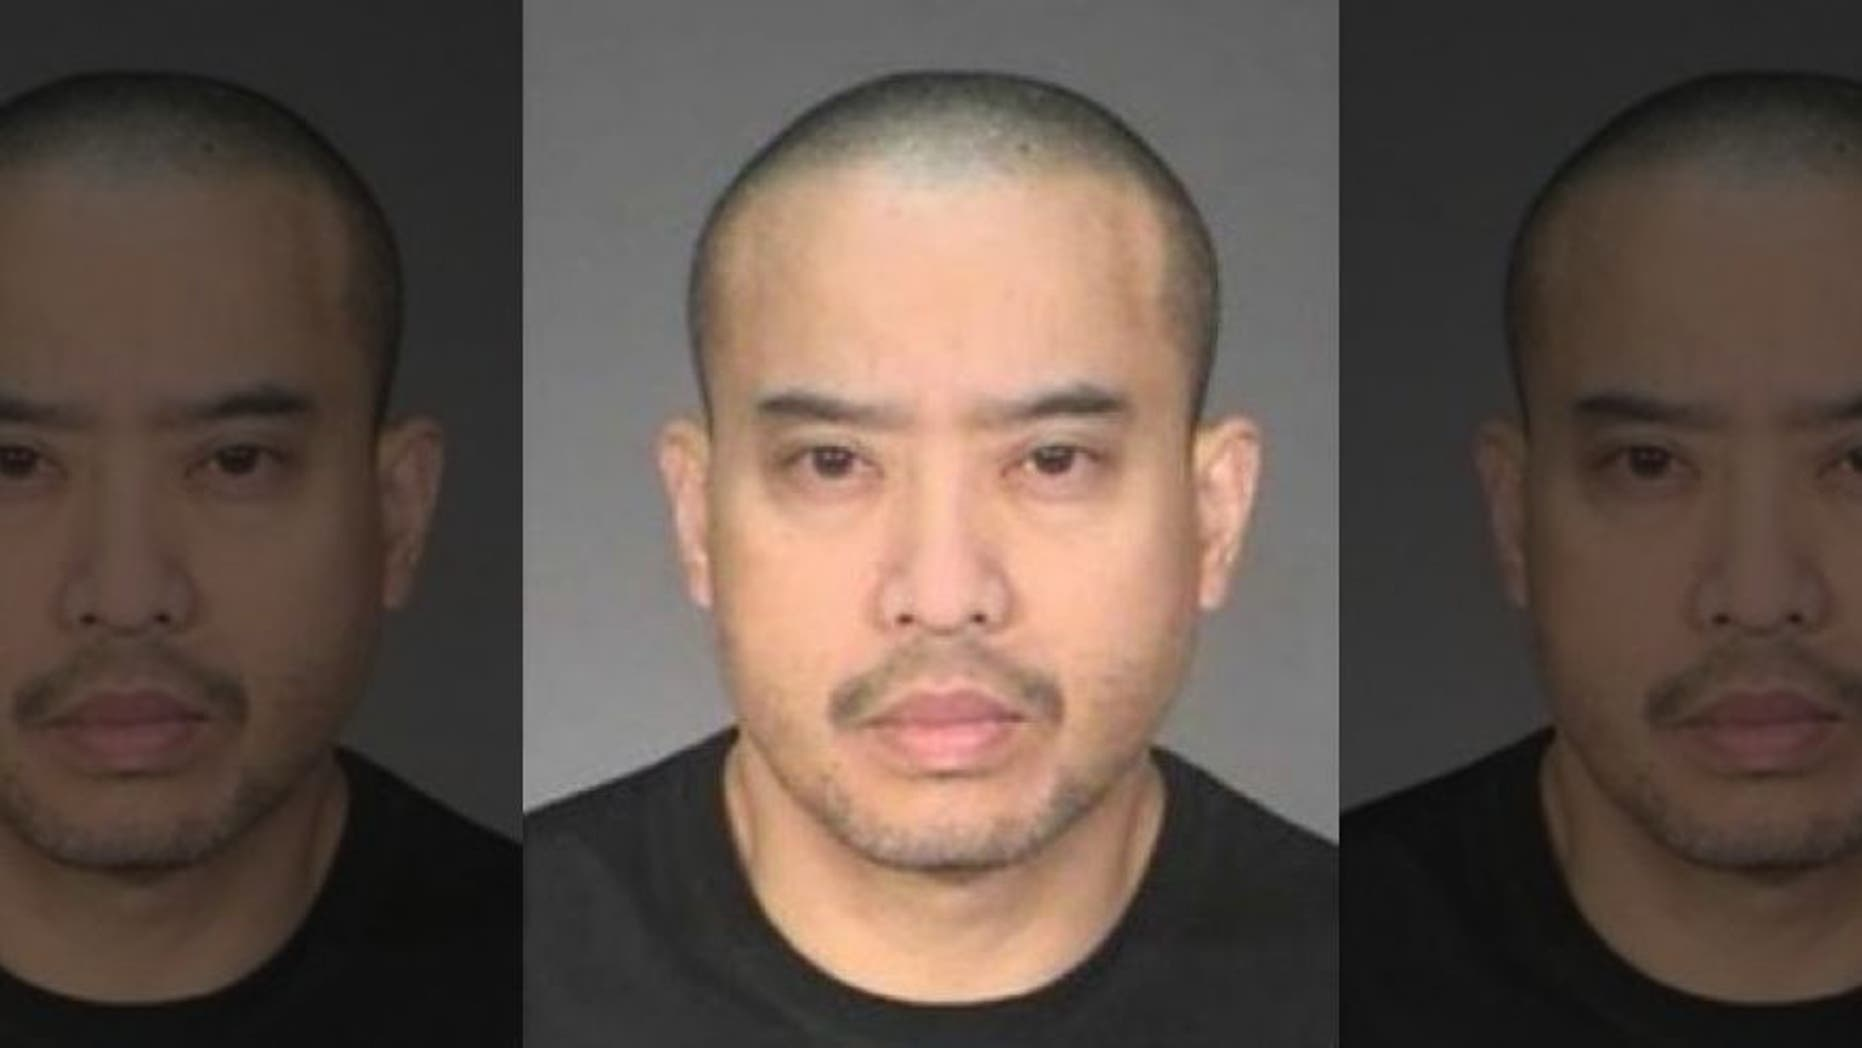 Lucifer Vincent Nguyen, 44, is wanted in connection with the woman's death in Mendota Heights on Saturday.